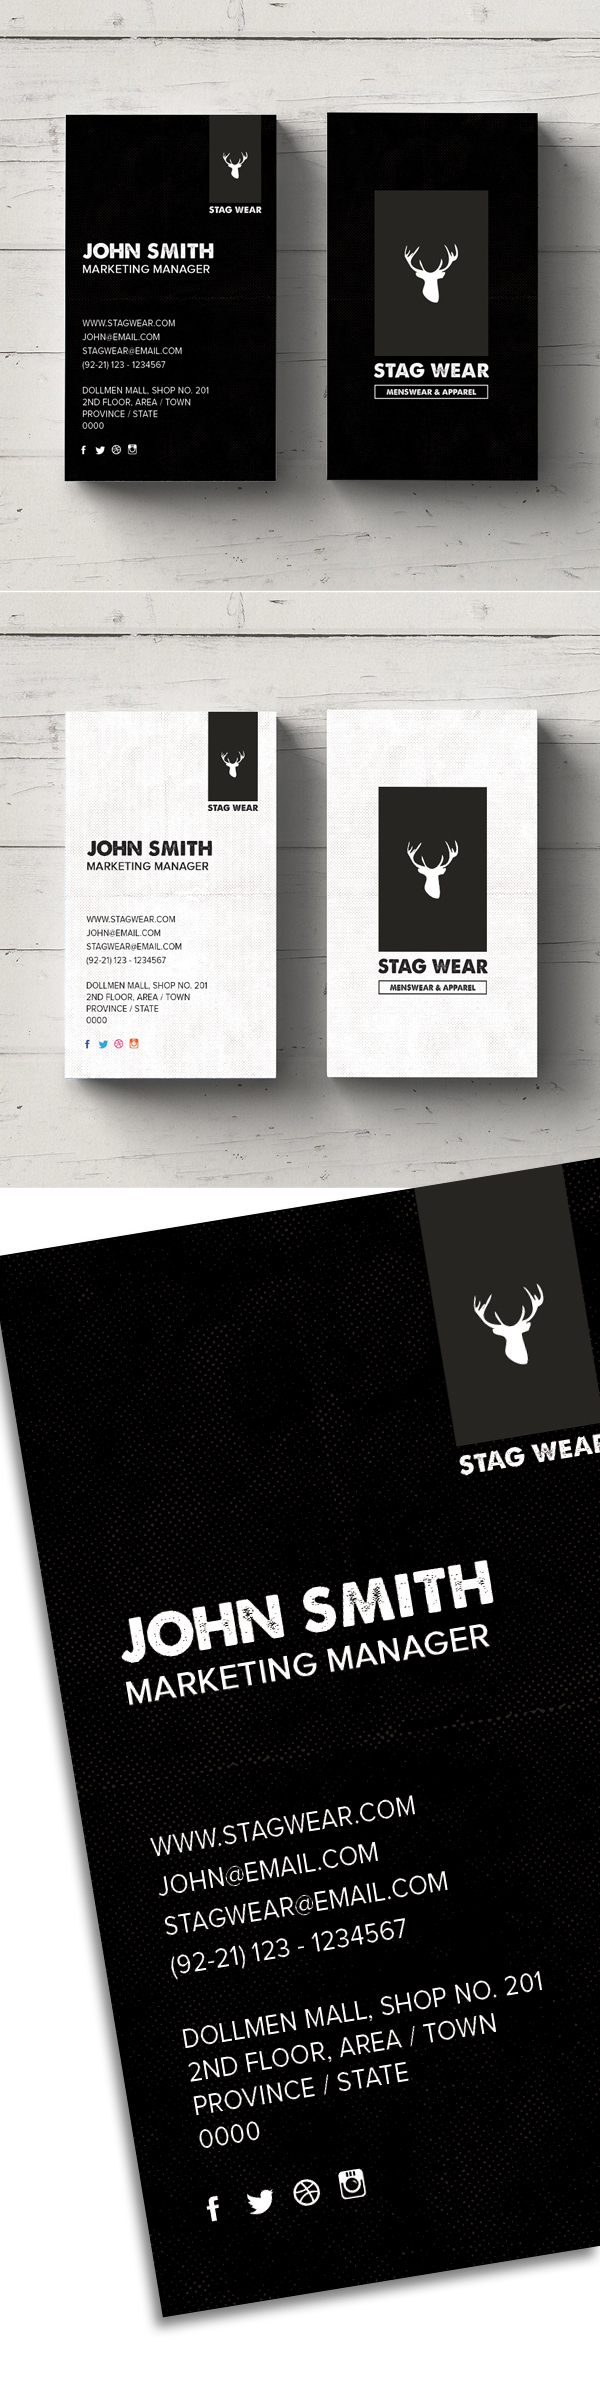 Freebie vertical business card psd template freebies graphic free vertical business card psd template maxwellsz